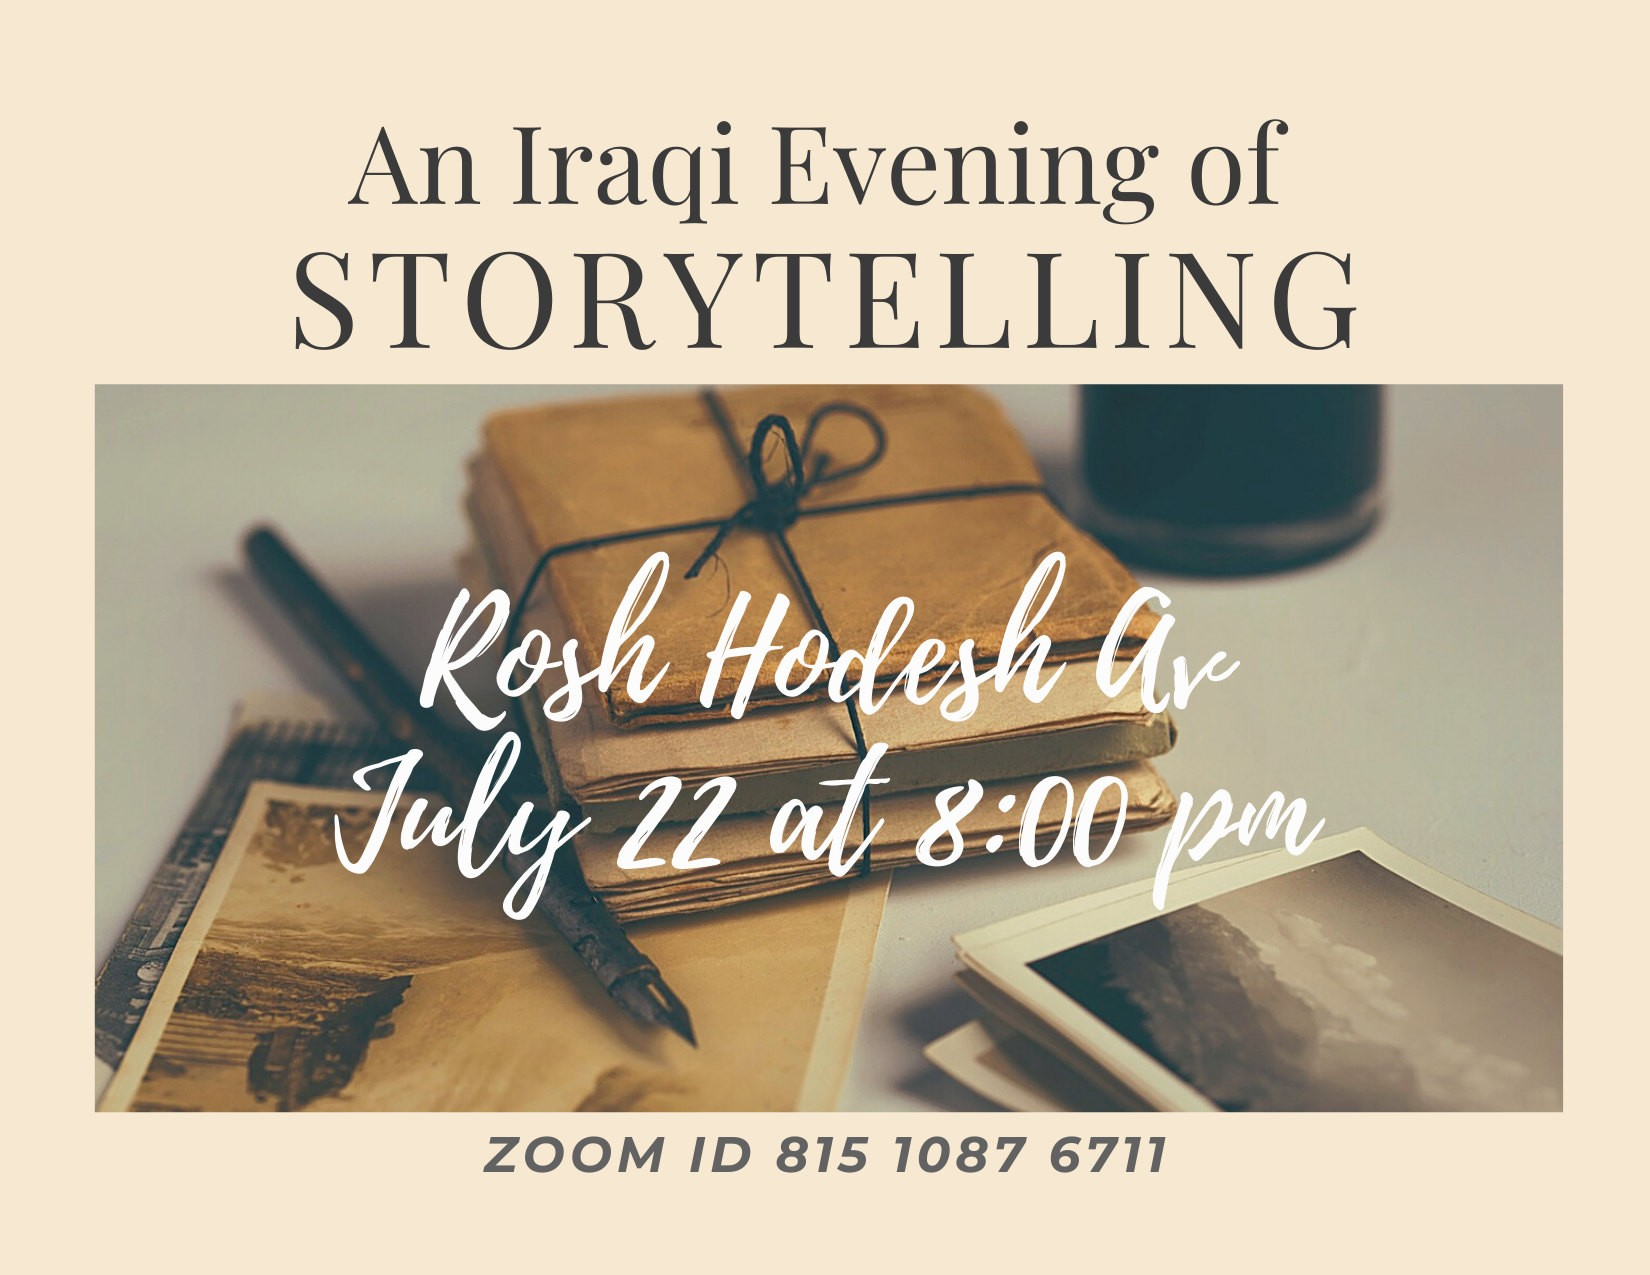 Iraqi Storytelling Evening